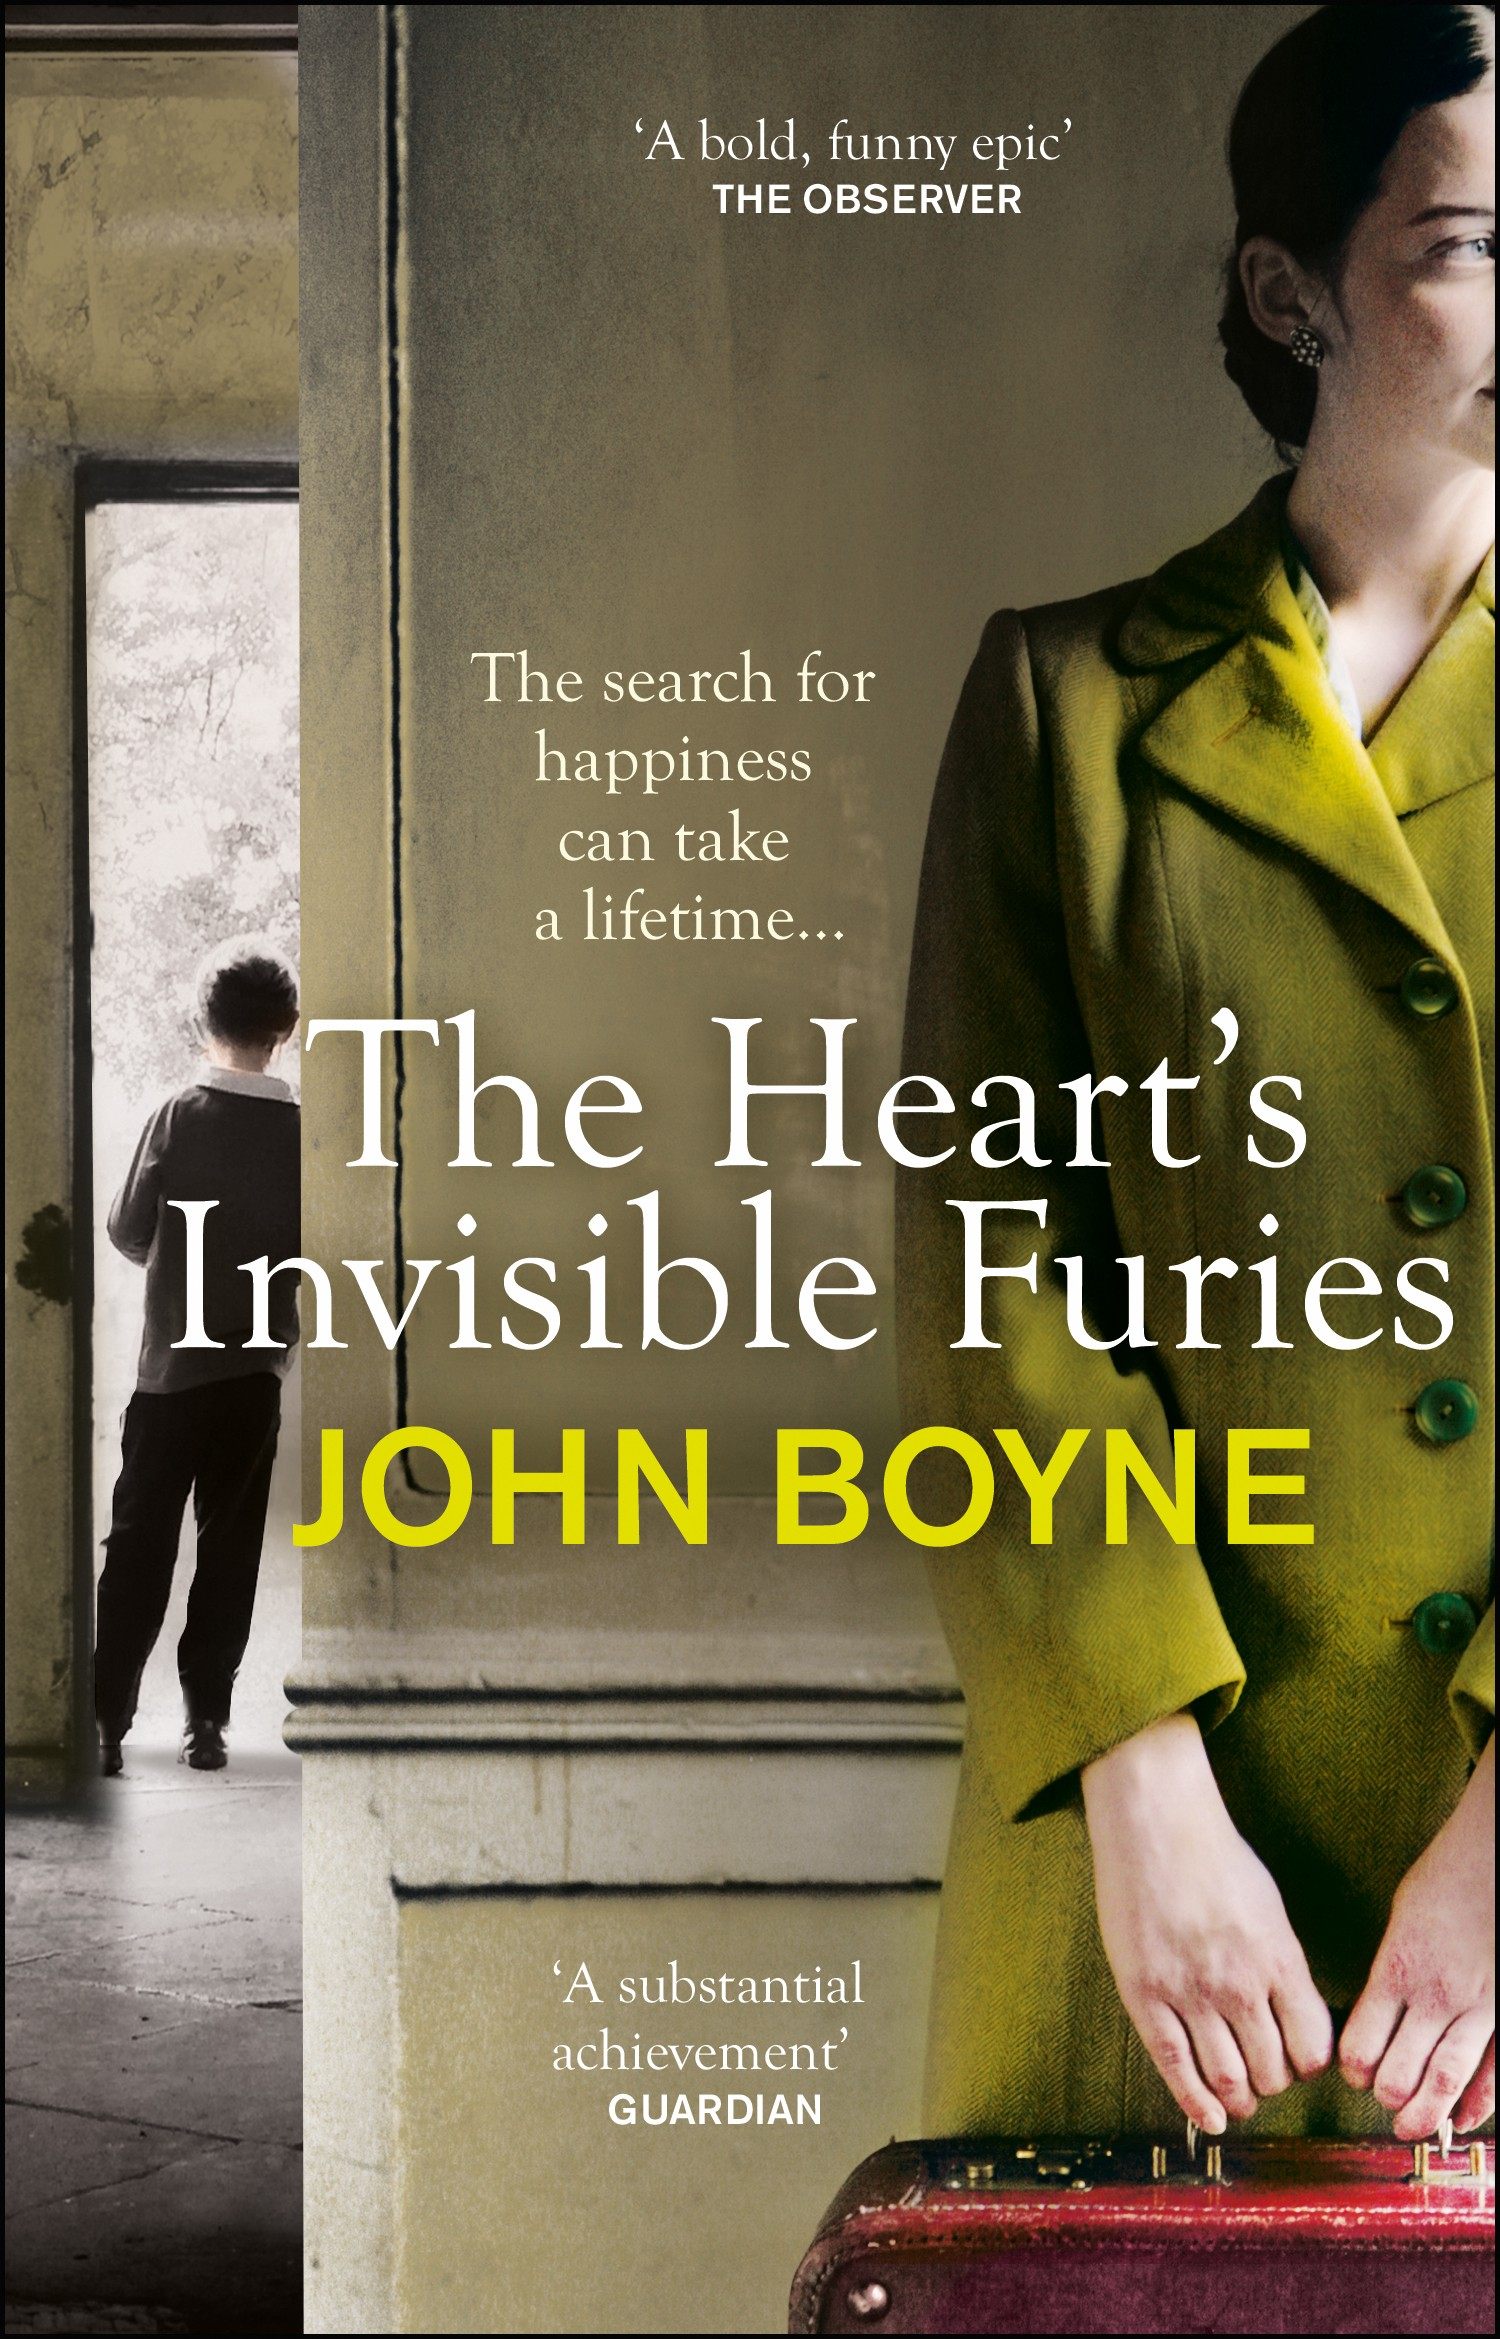 13 The Heart's Invisible Furies by John Boyne - 52 Week